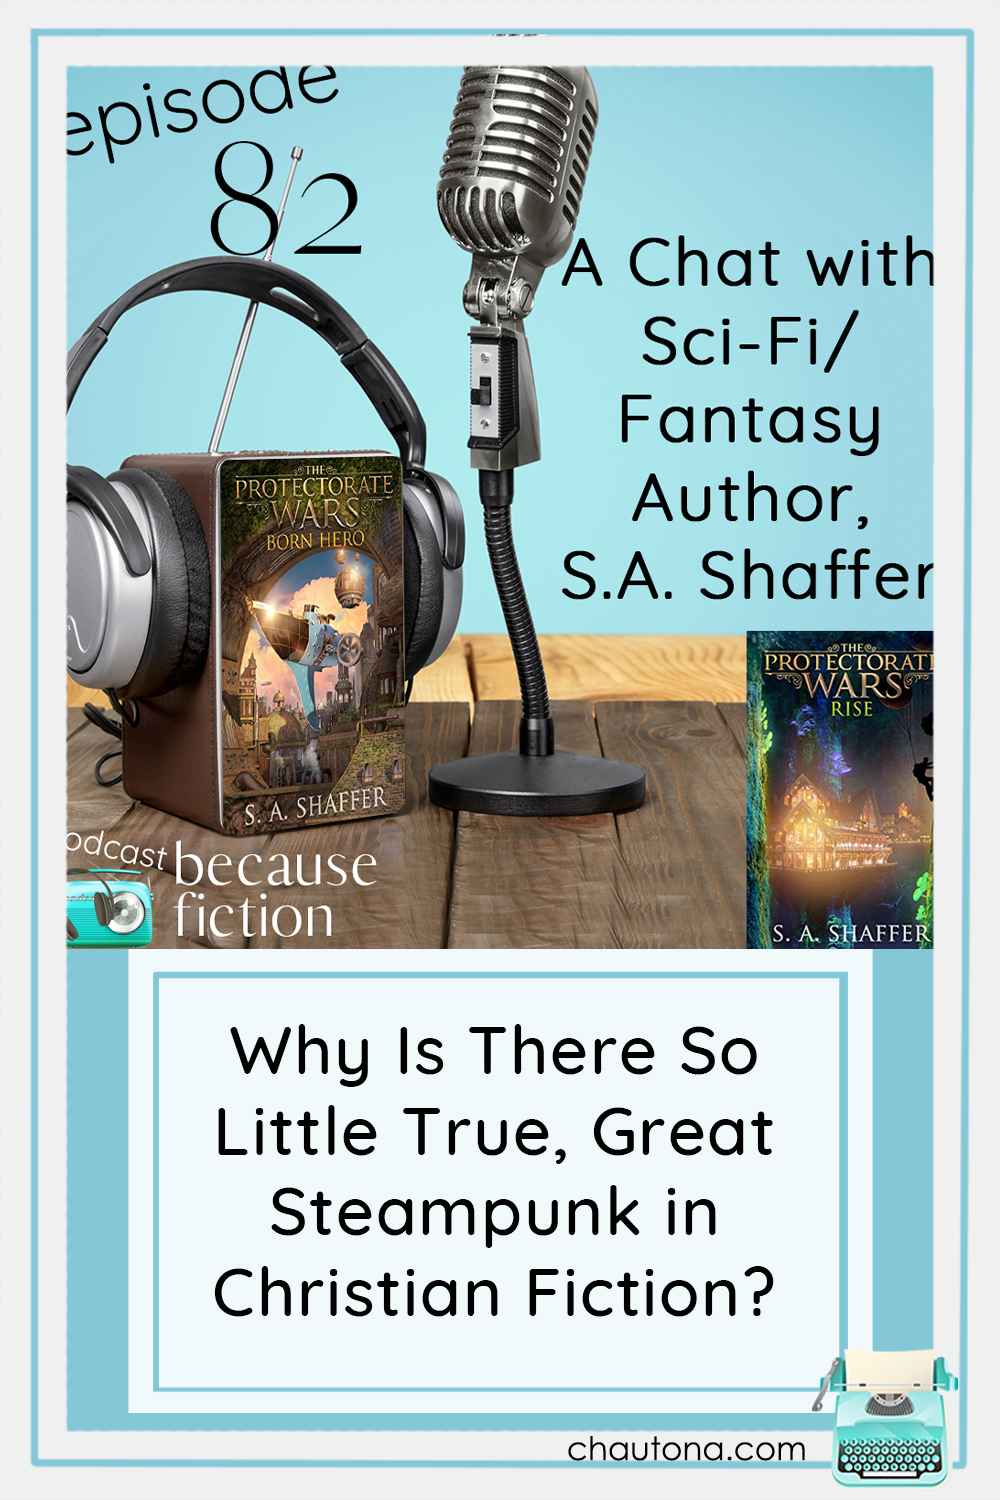 Steampunk as a genre has been inundated by sensual romance, but what about the brilliance of guys like Jules Verne and now S.A. Shaffer via @chautonahavig